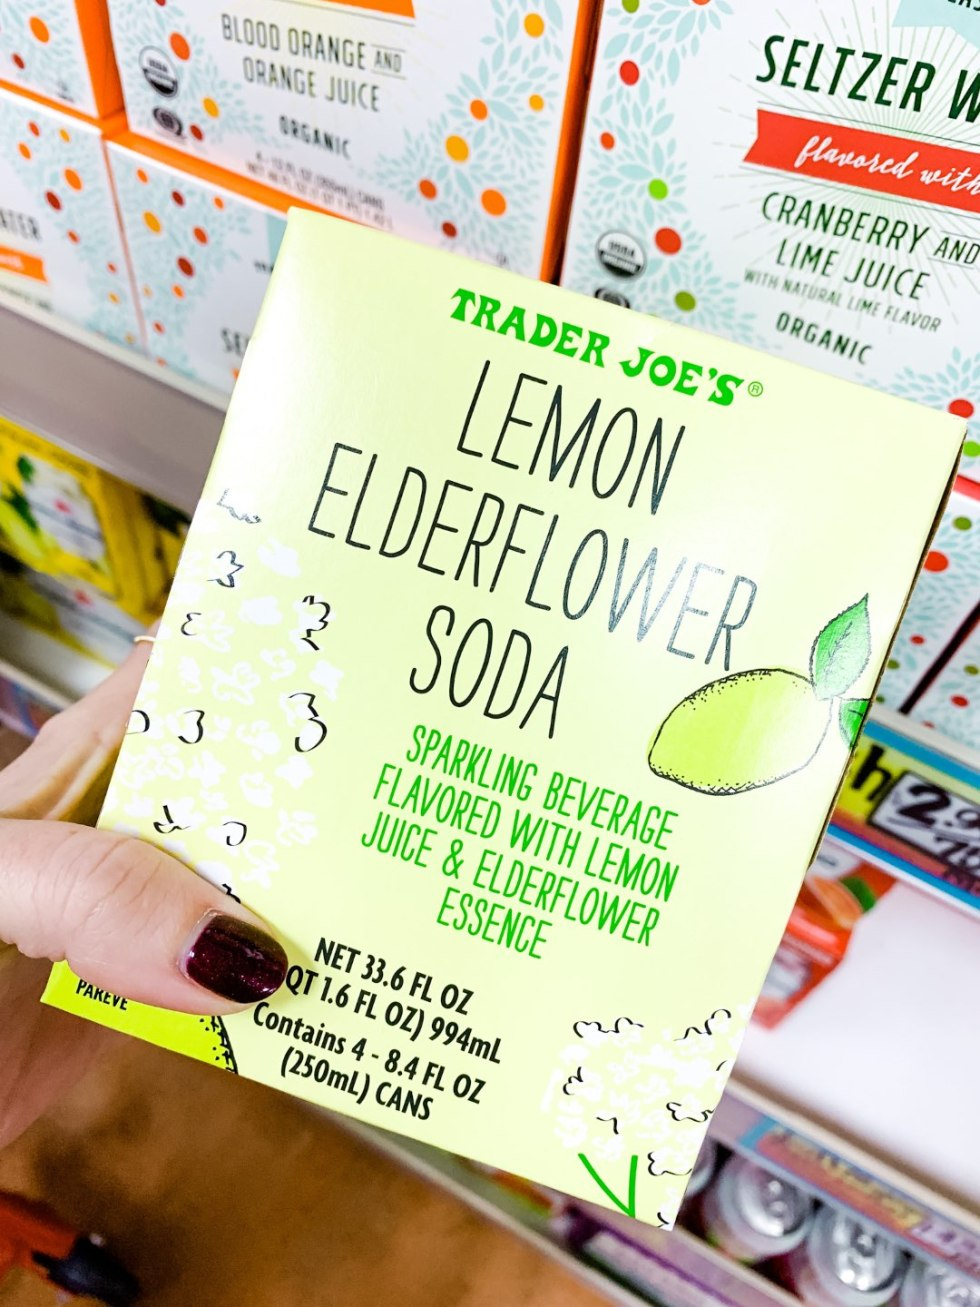 Shopping Haul: 25 Trader Joe's Favorites you Should Try Too - I'm Fixin' To - @mbg0112